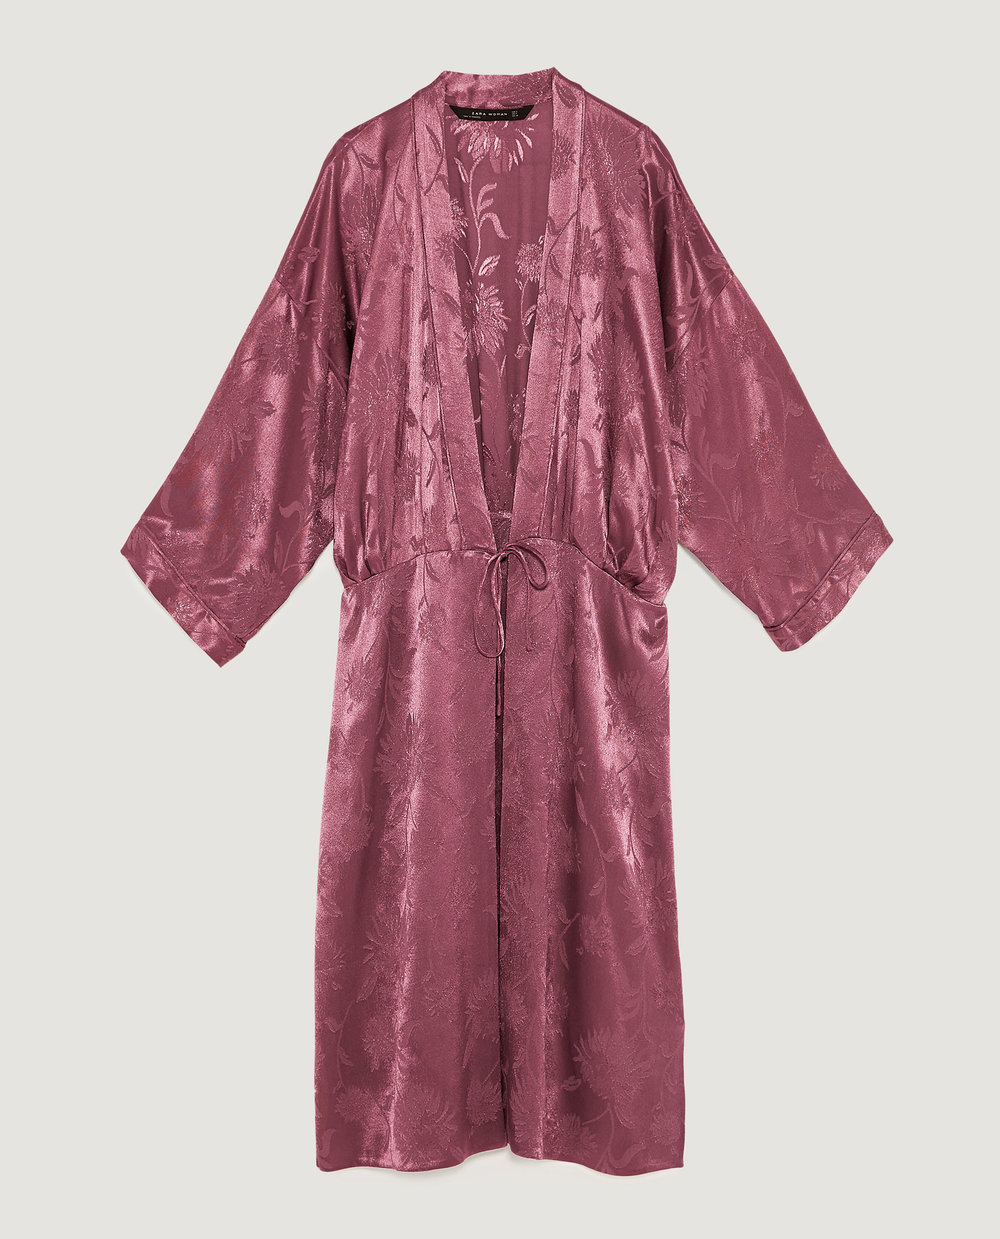 just in case you need the kimono too  Shimmery Jacquard Kimono / $80 / Zara